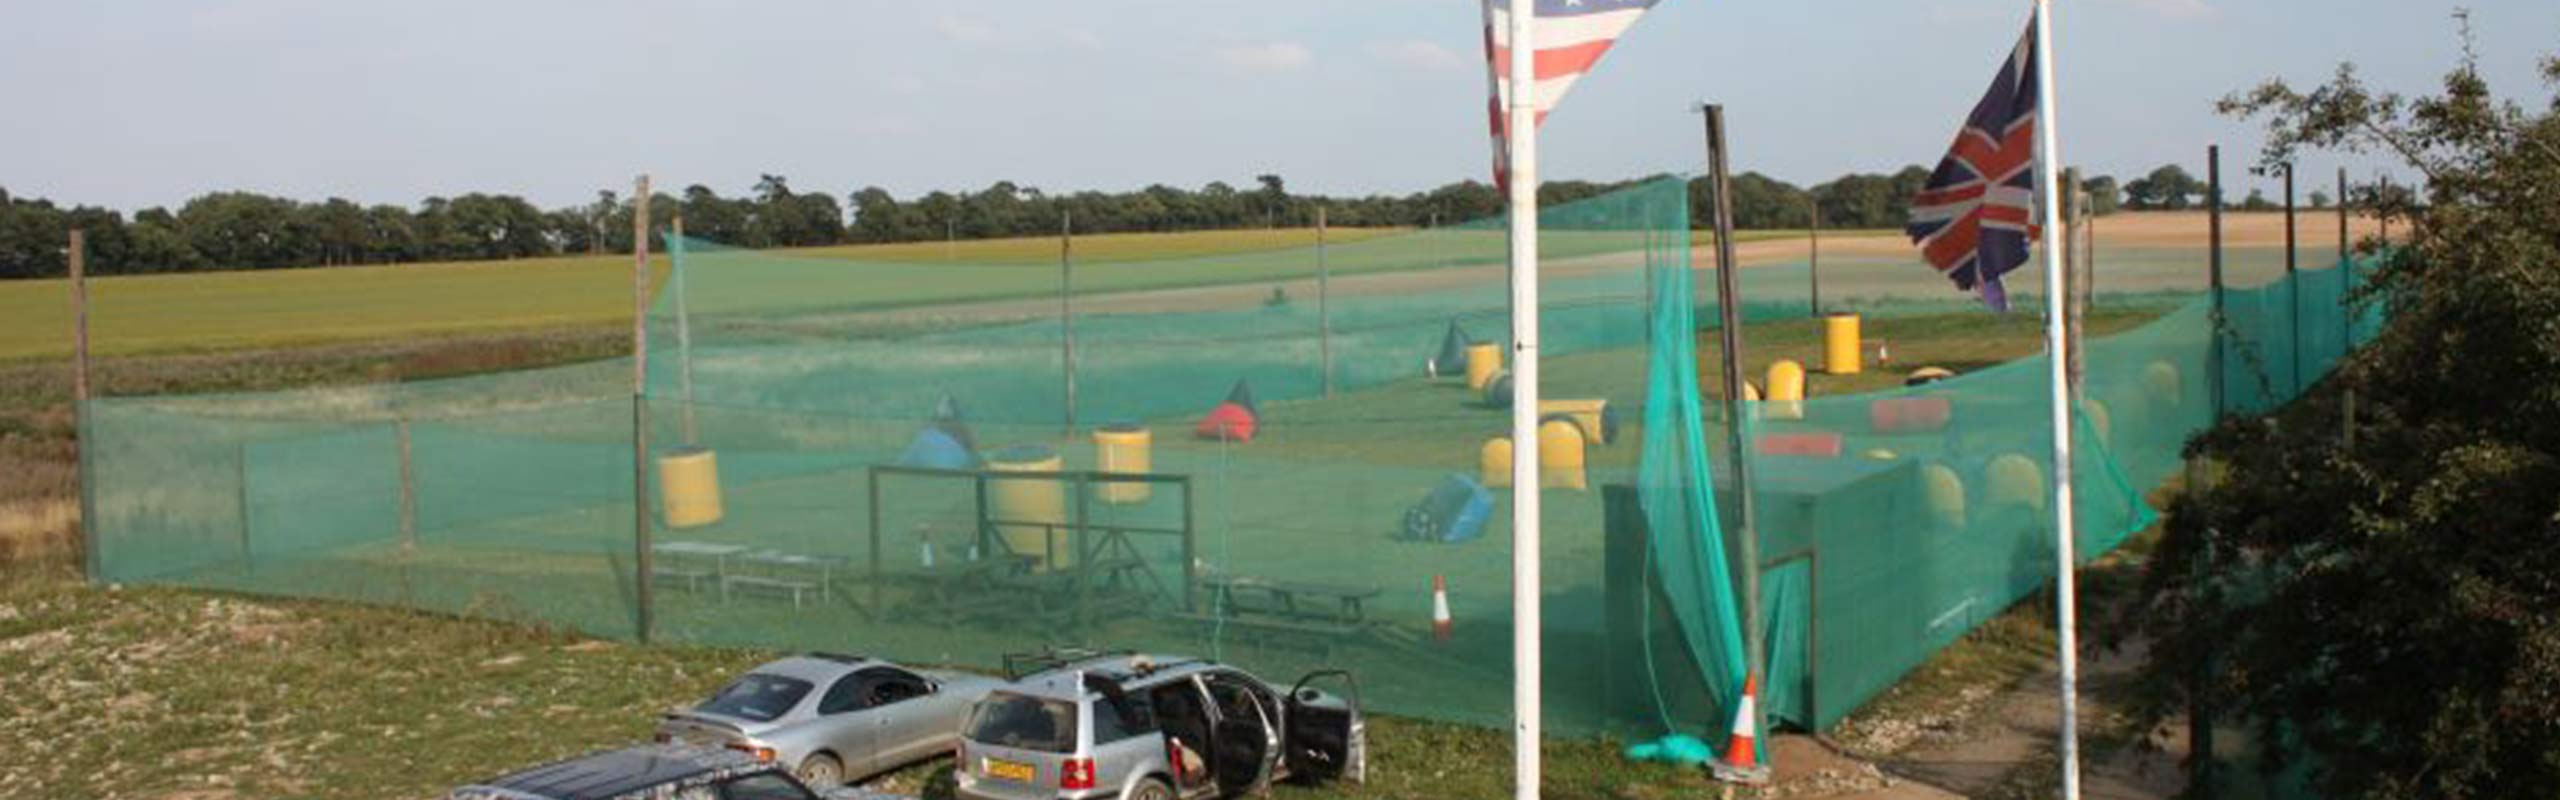 Laser Clays Norfolk